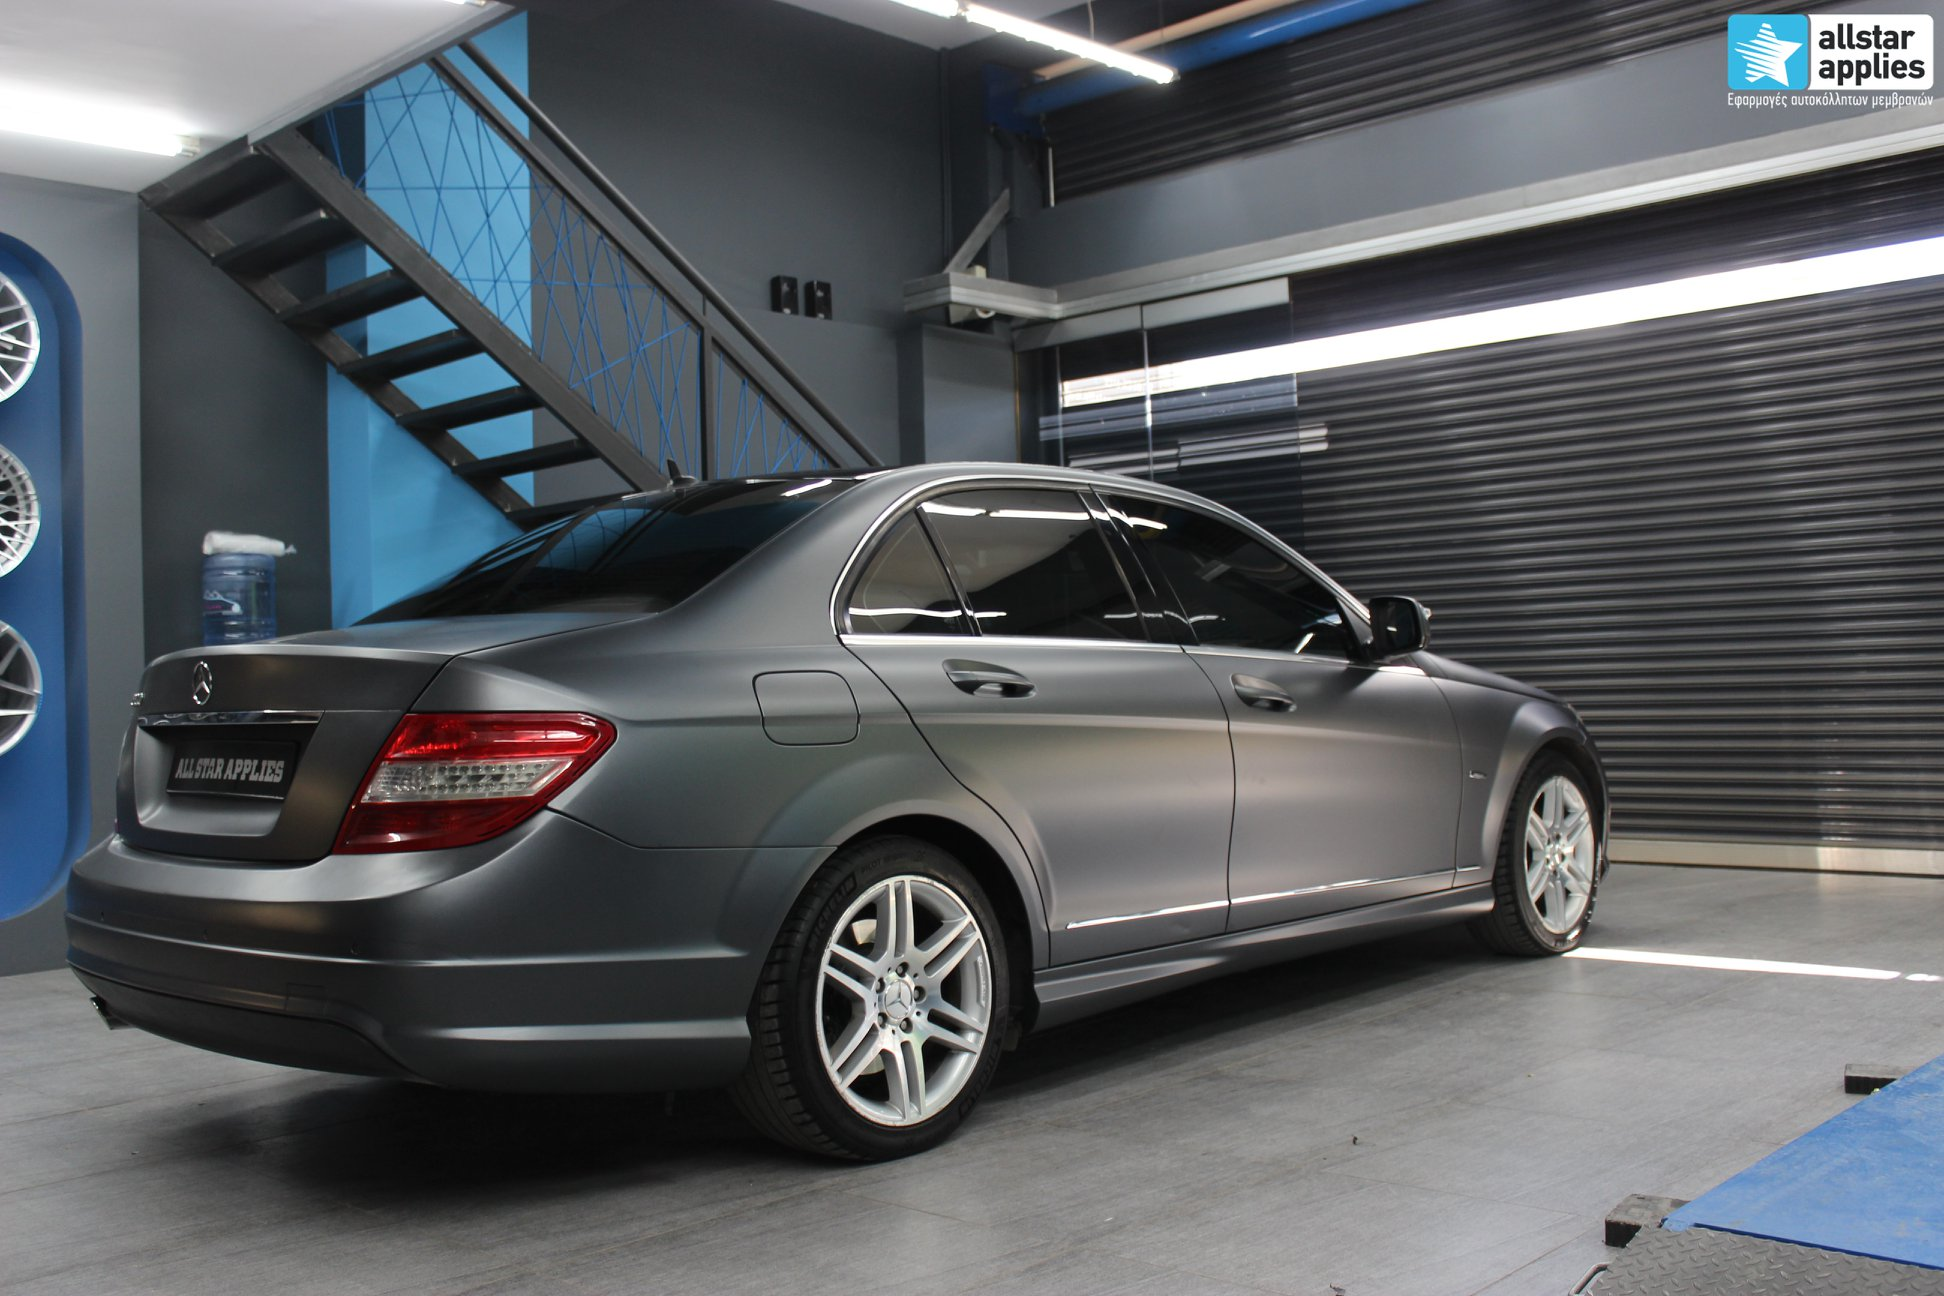 Mercedes C200 AMG - Satin Dark Grey (3)